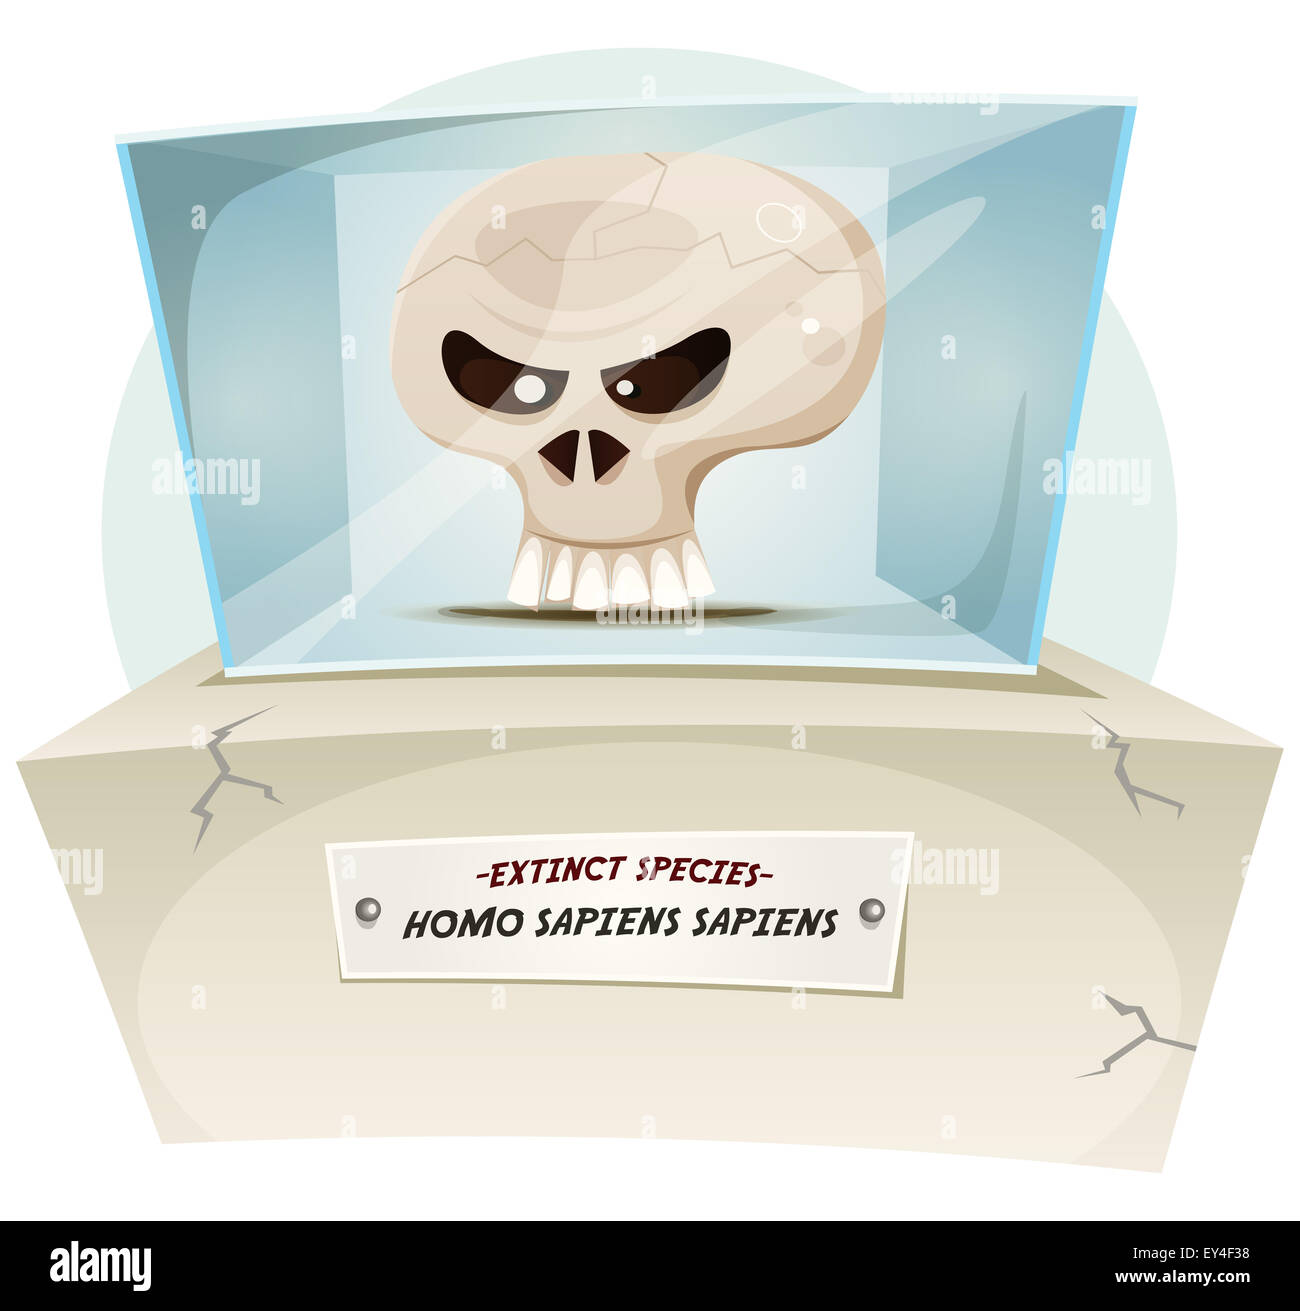 Illustration of a cartoon human skull inside museum exhibition, symbolizing extinction of human species - Stock Image